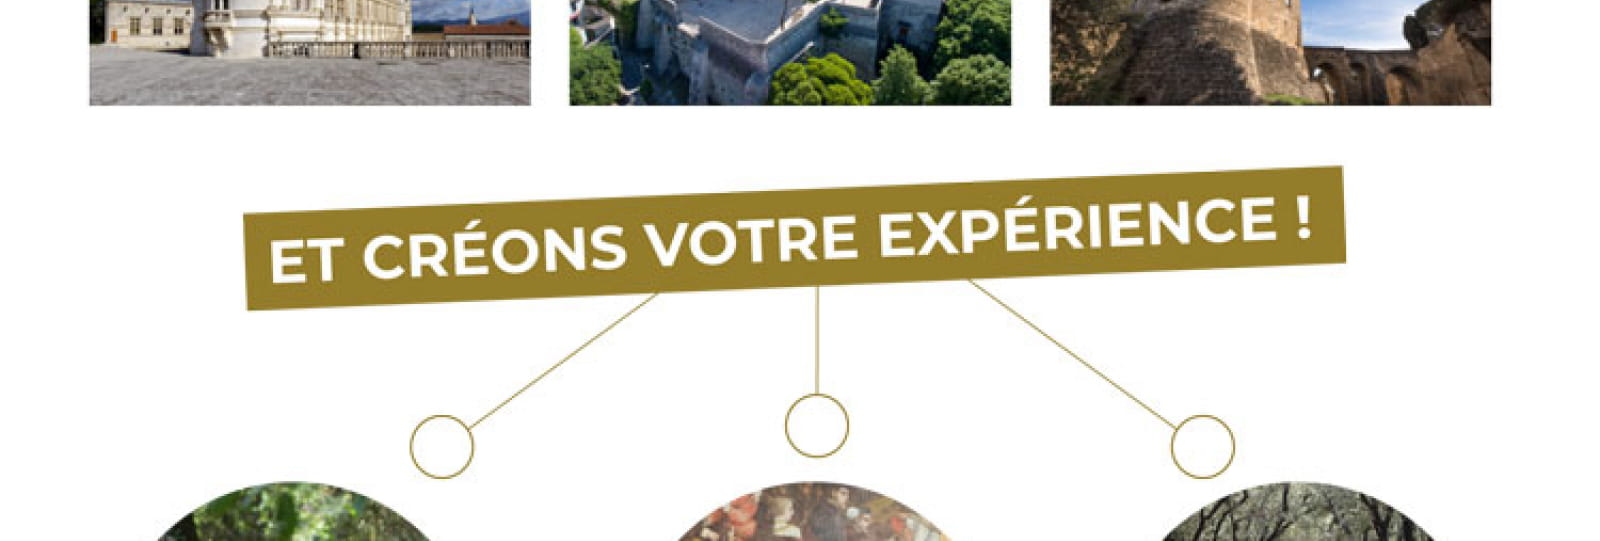 Experience our châteaux !